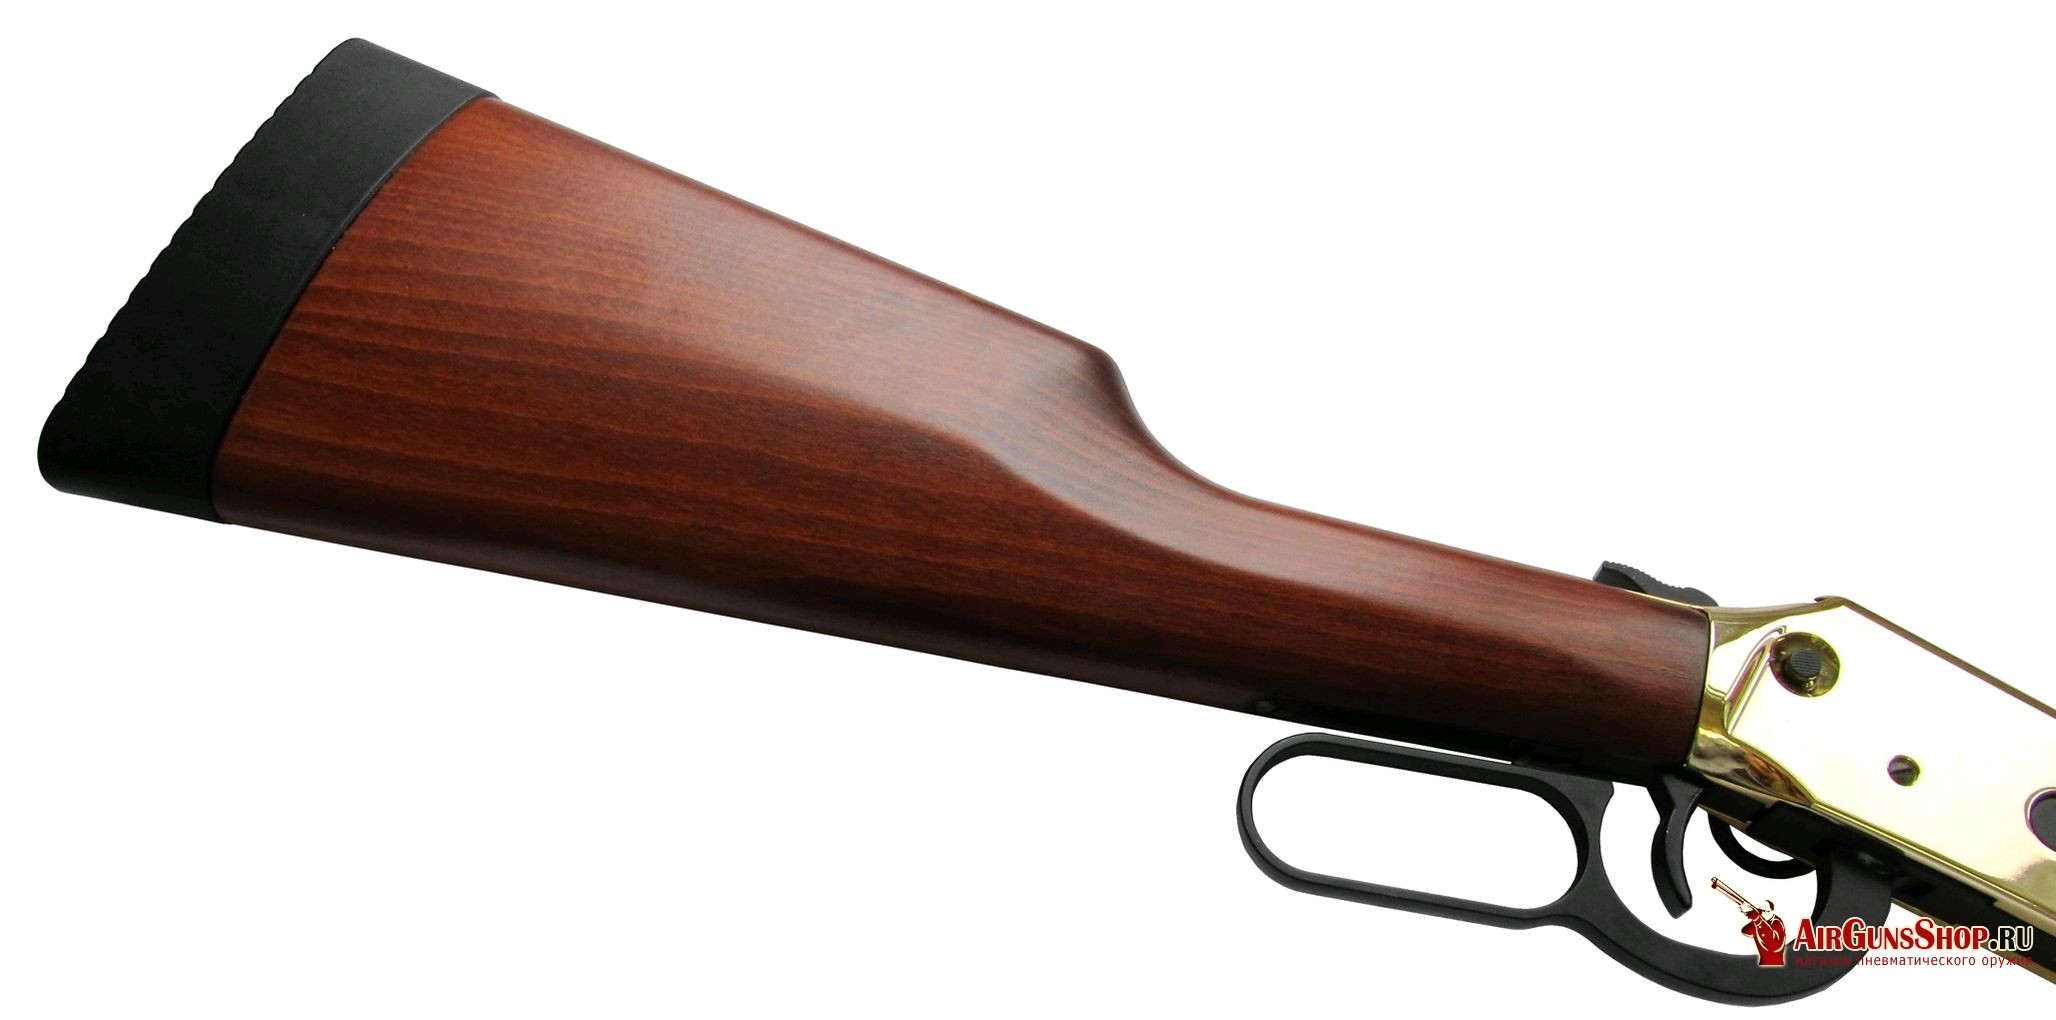 Винтовка Umarex Walther Lever Action Gold цена